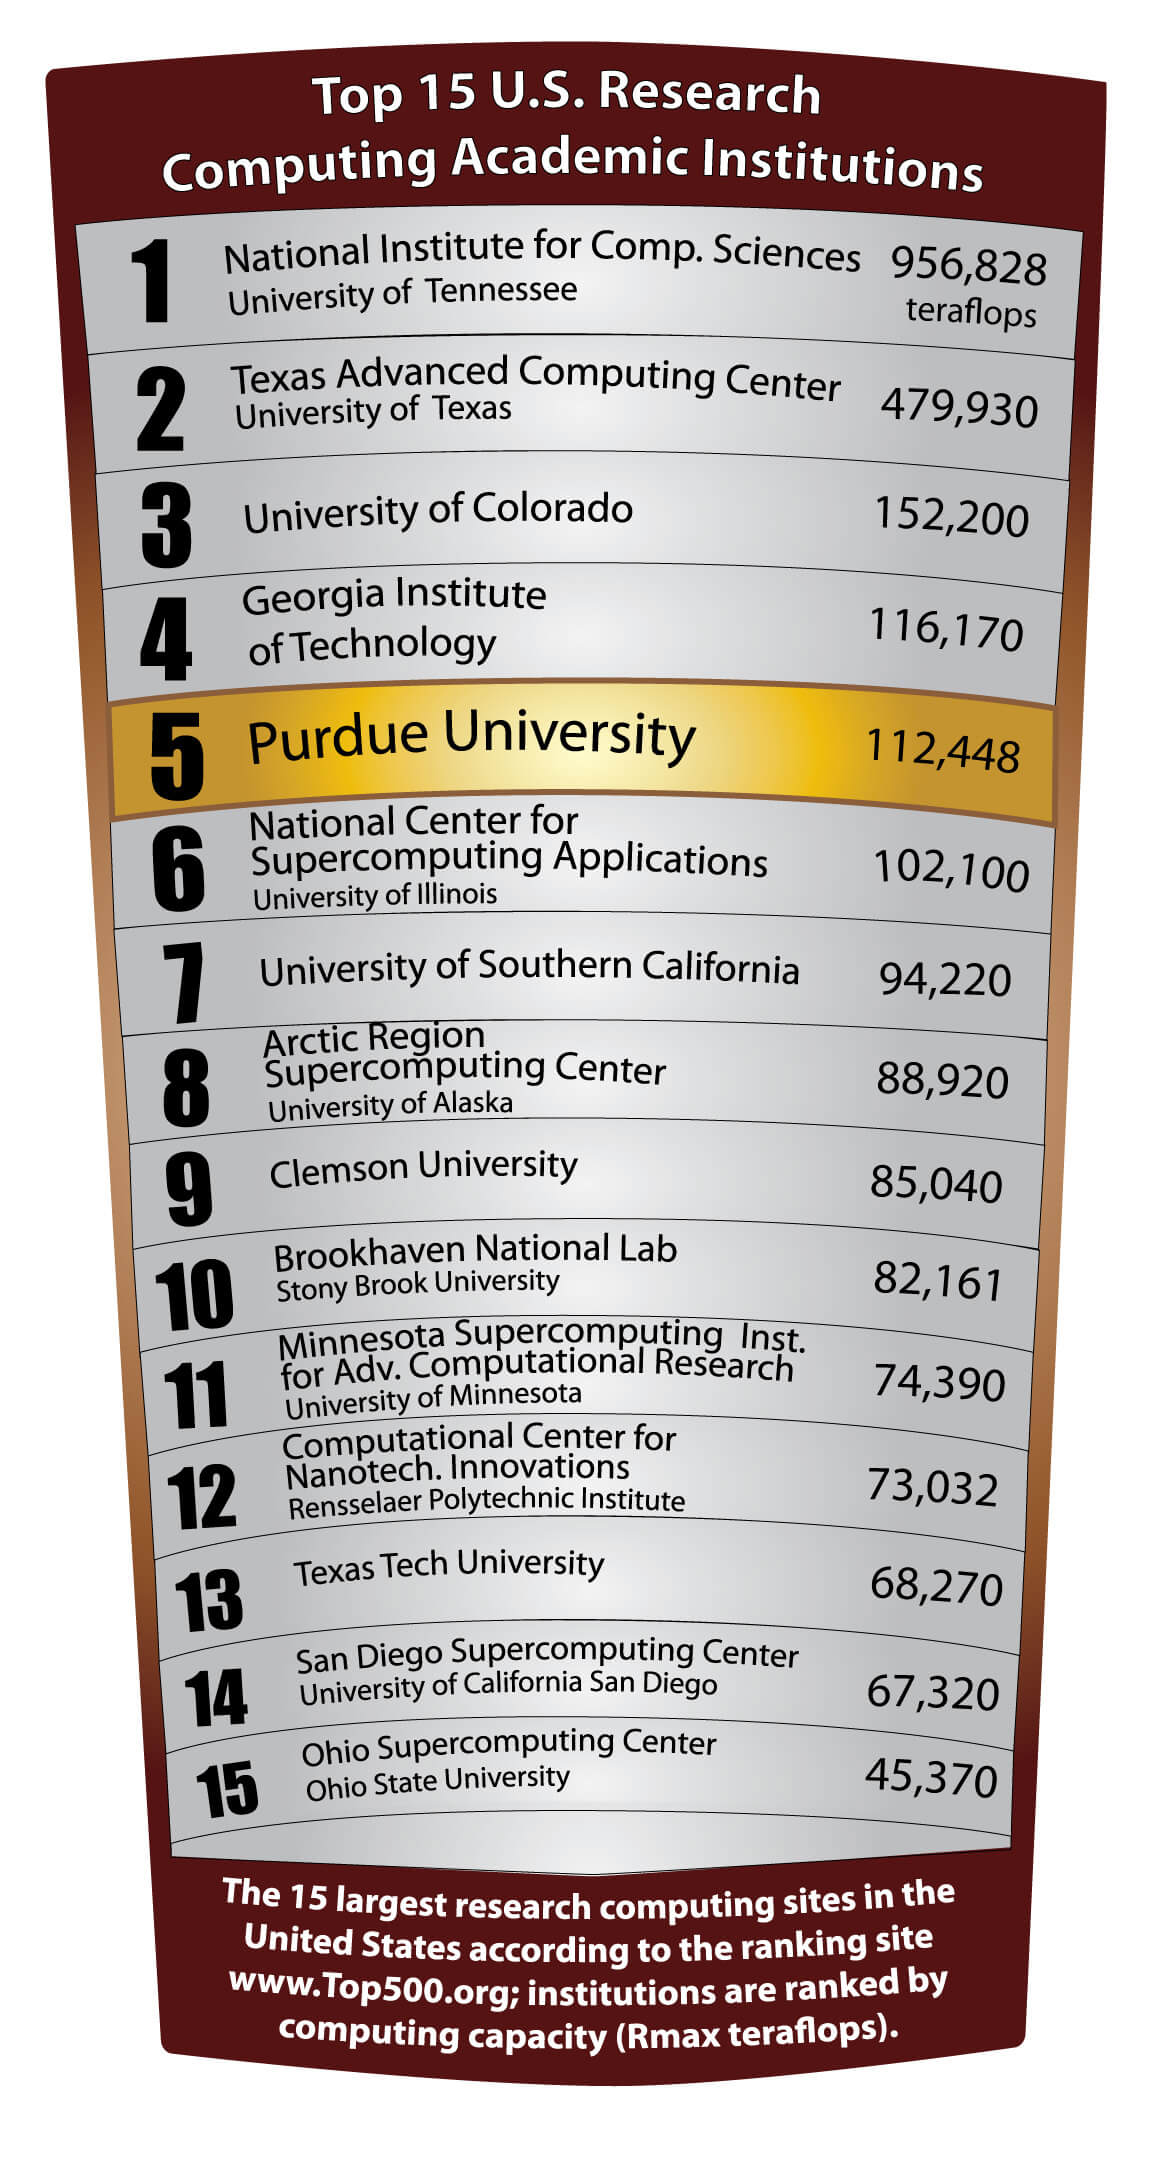 Rossmann Collage Purdue Computing Resources Rank Near Top Nationally